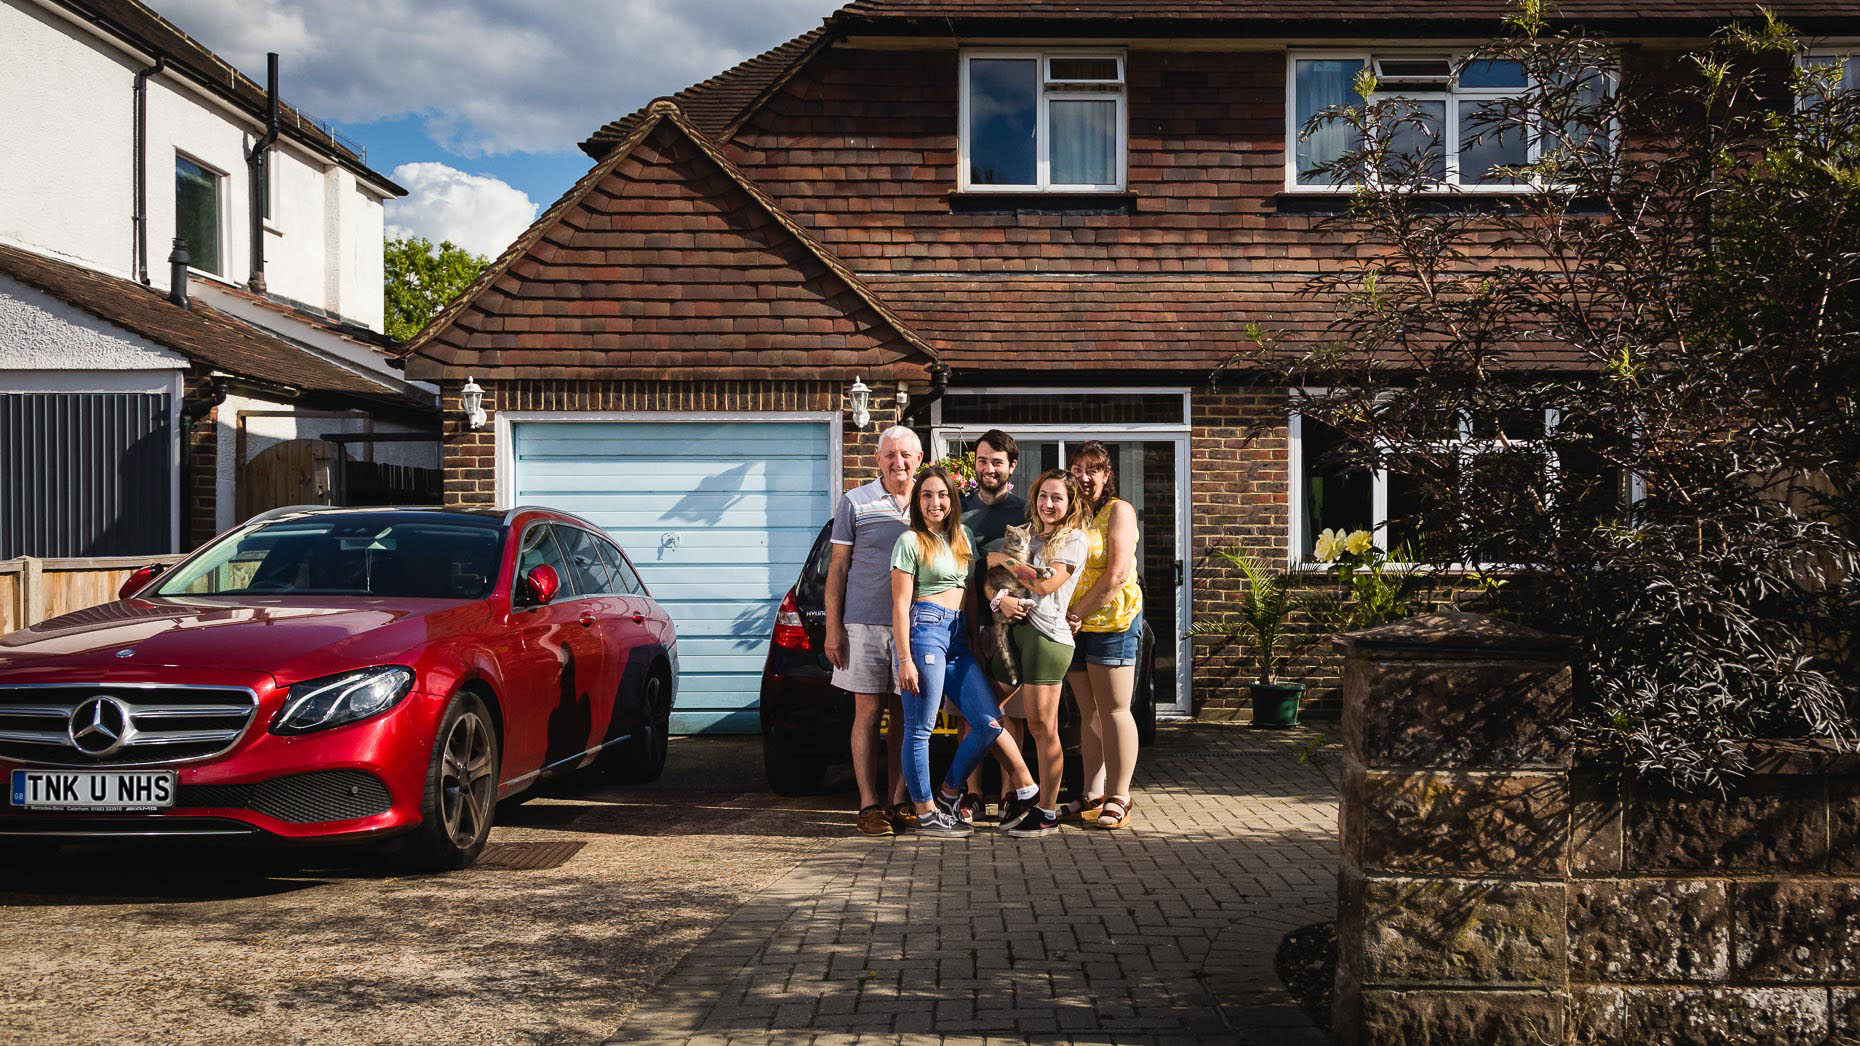 Ashtead Doorstep Portraits 85